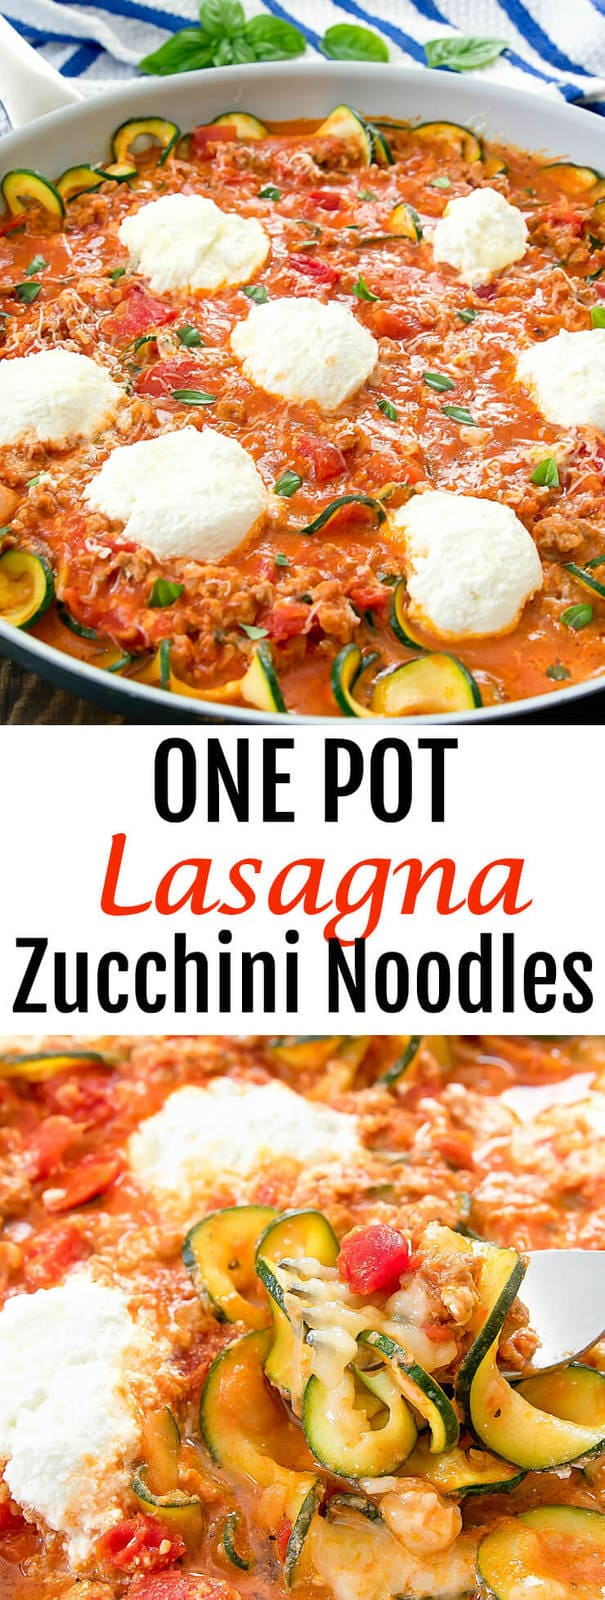 One Pot Lasagna Zucchini Noodles. A healthier spin on lasagna pasta that is flavorful and easy.